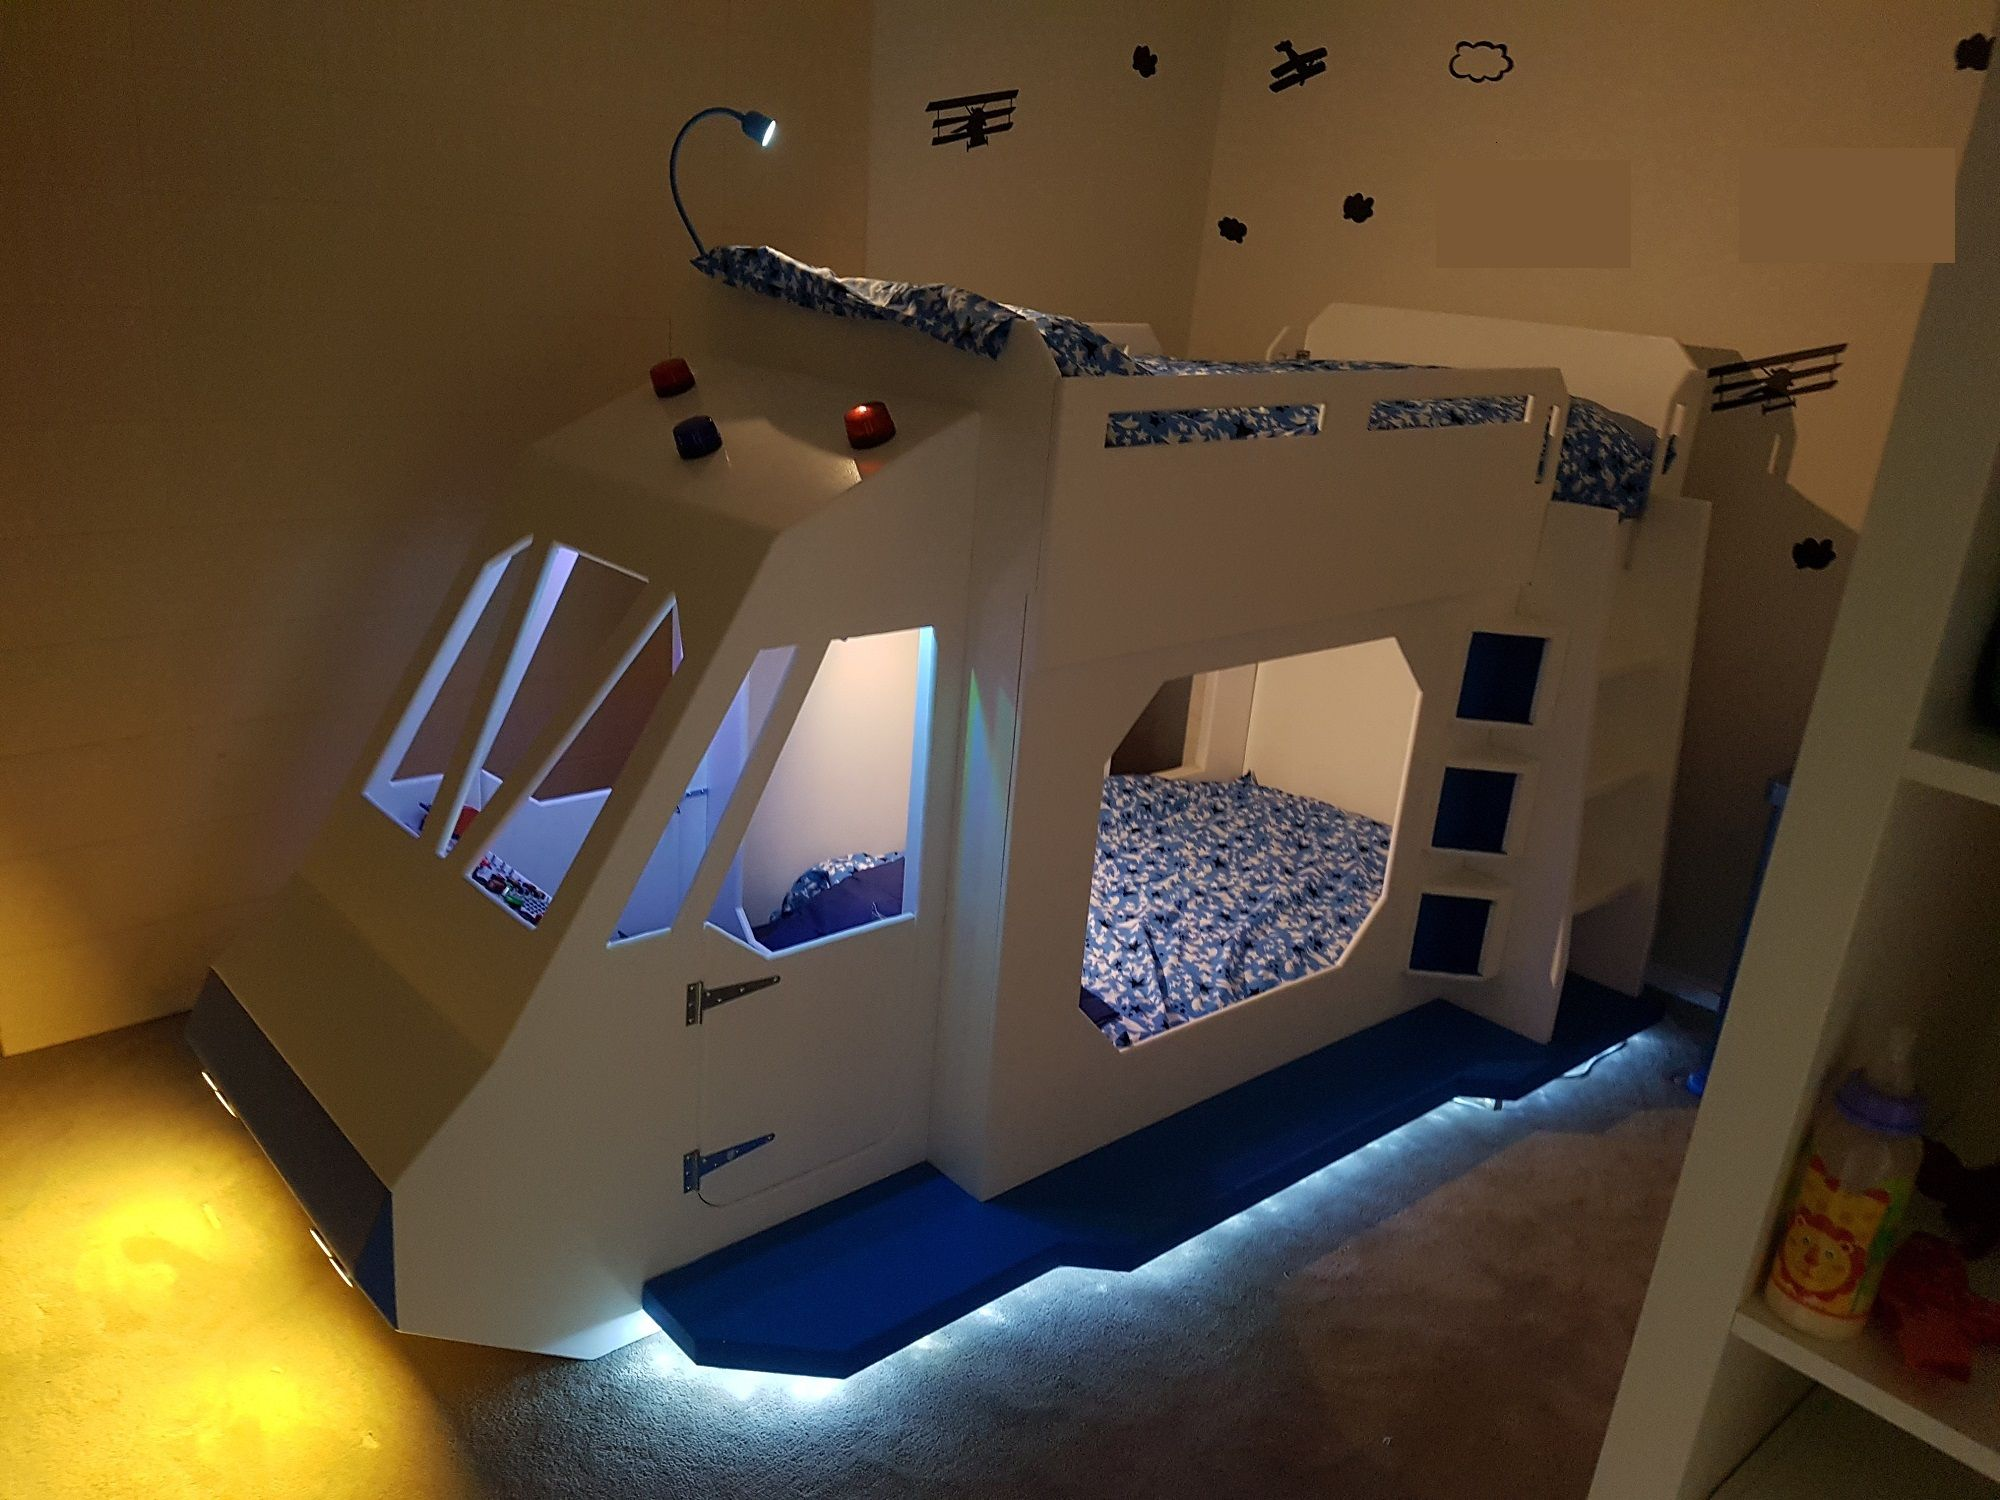 Space Shuttle Cockpit And Bunk Beds In 2019 Wish List